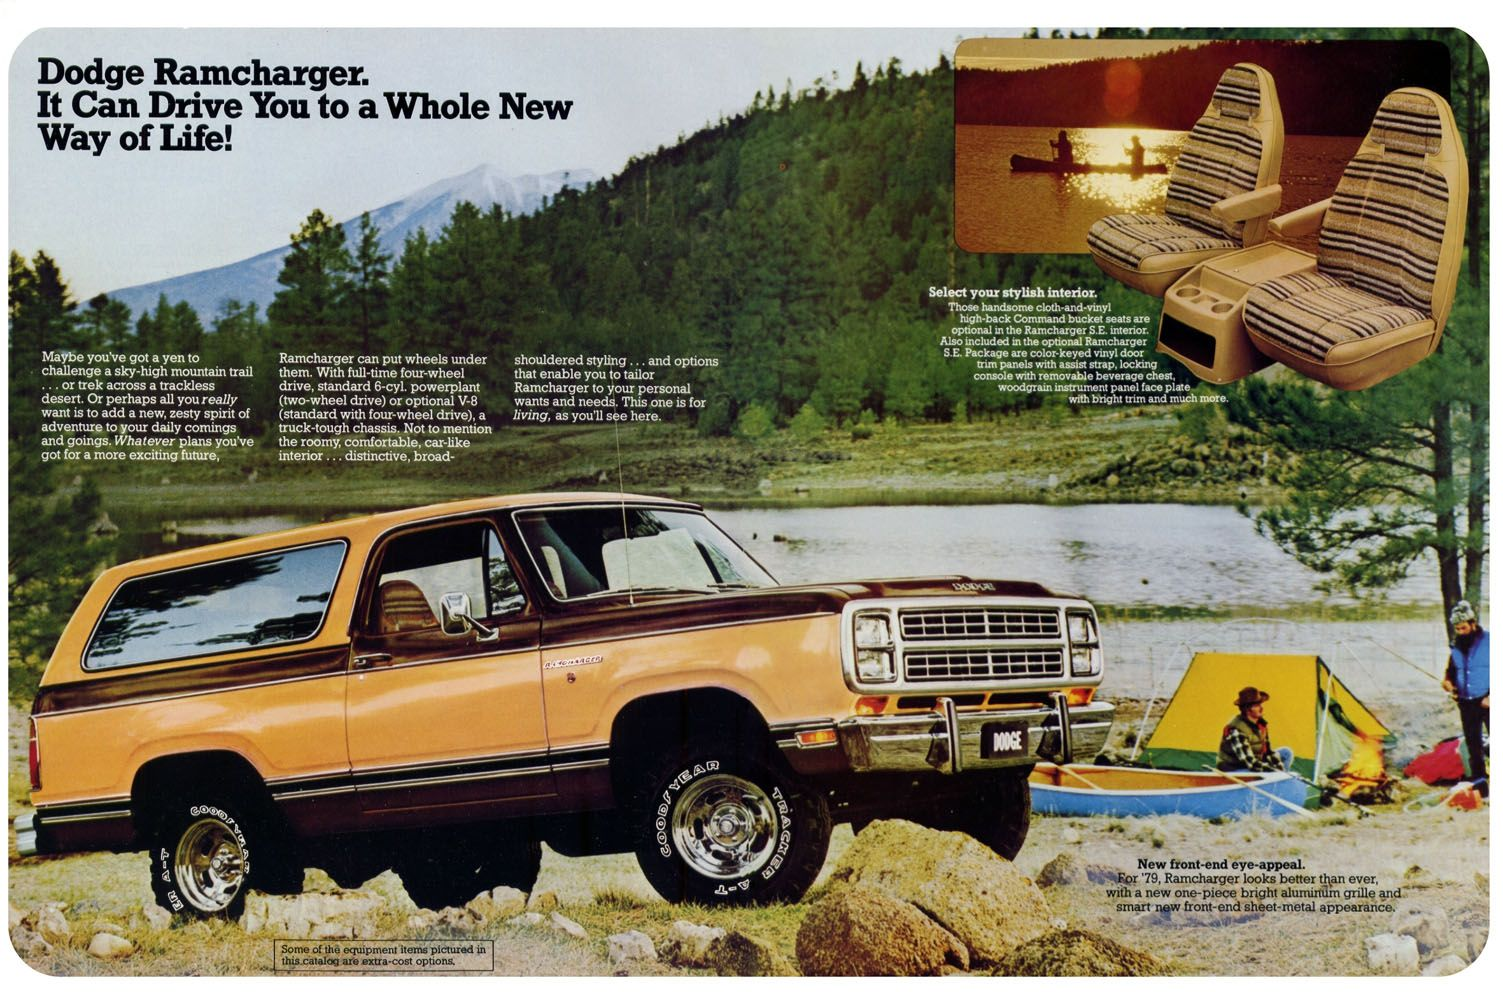 1979 Dodge Ram Charger I Had One For About A Week It Wouldn T Run Dodge Ramcharger Dodge American Muscle Cars Dodge